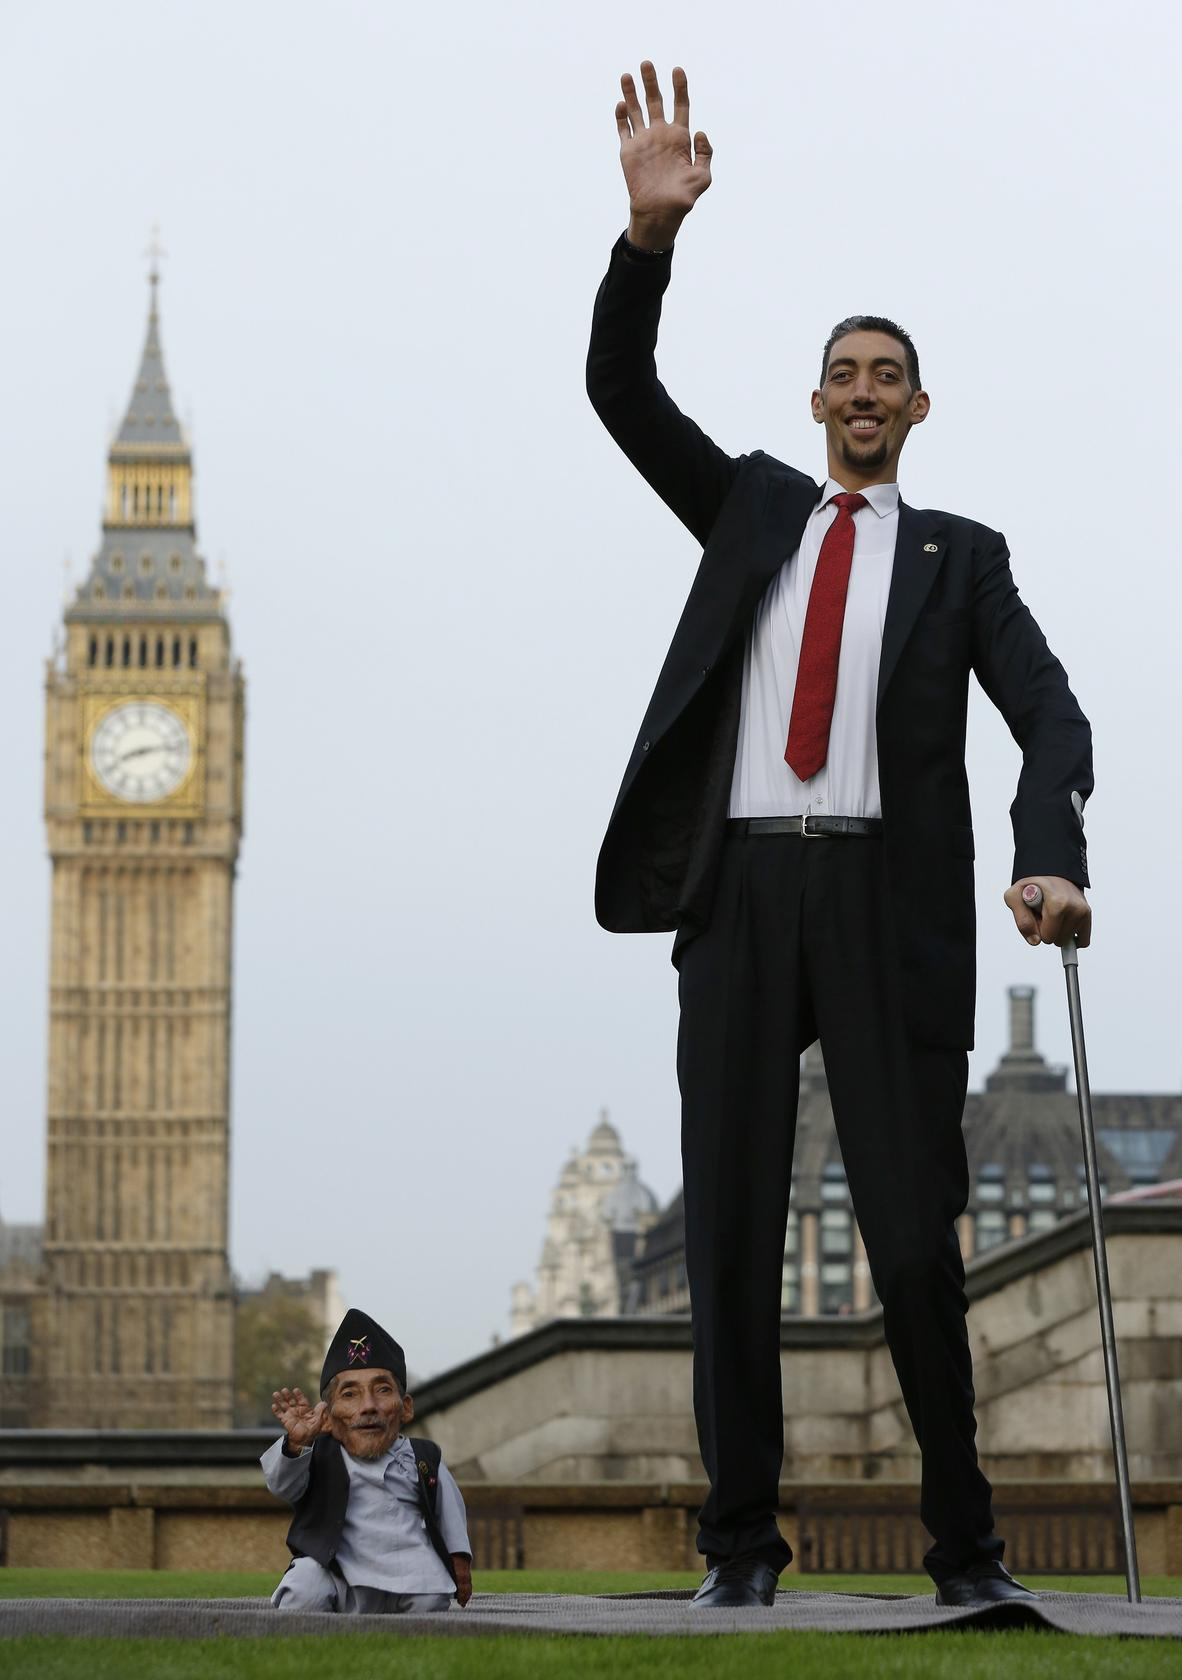 World S Most Beautiful: World's Tallest Man Meets His 55cm Counterpart For World